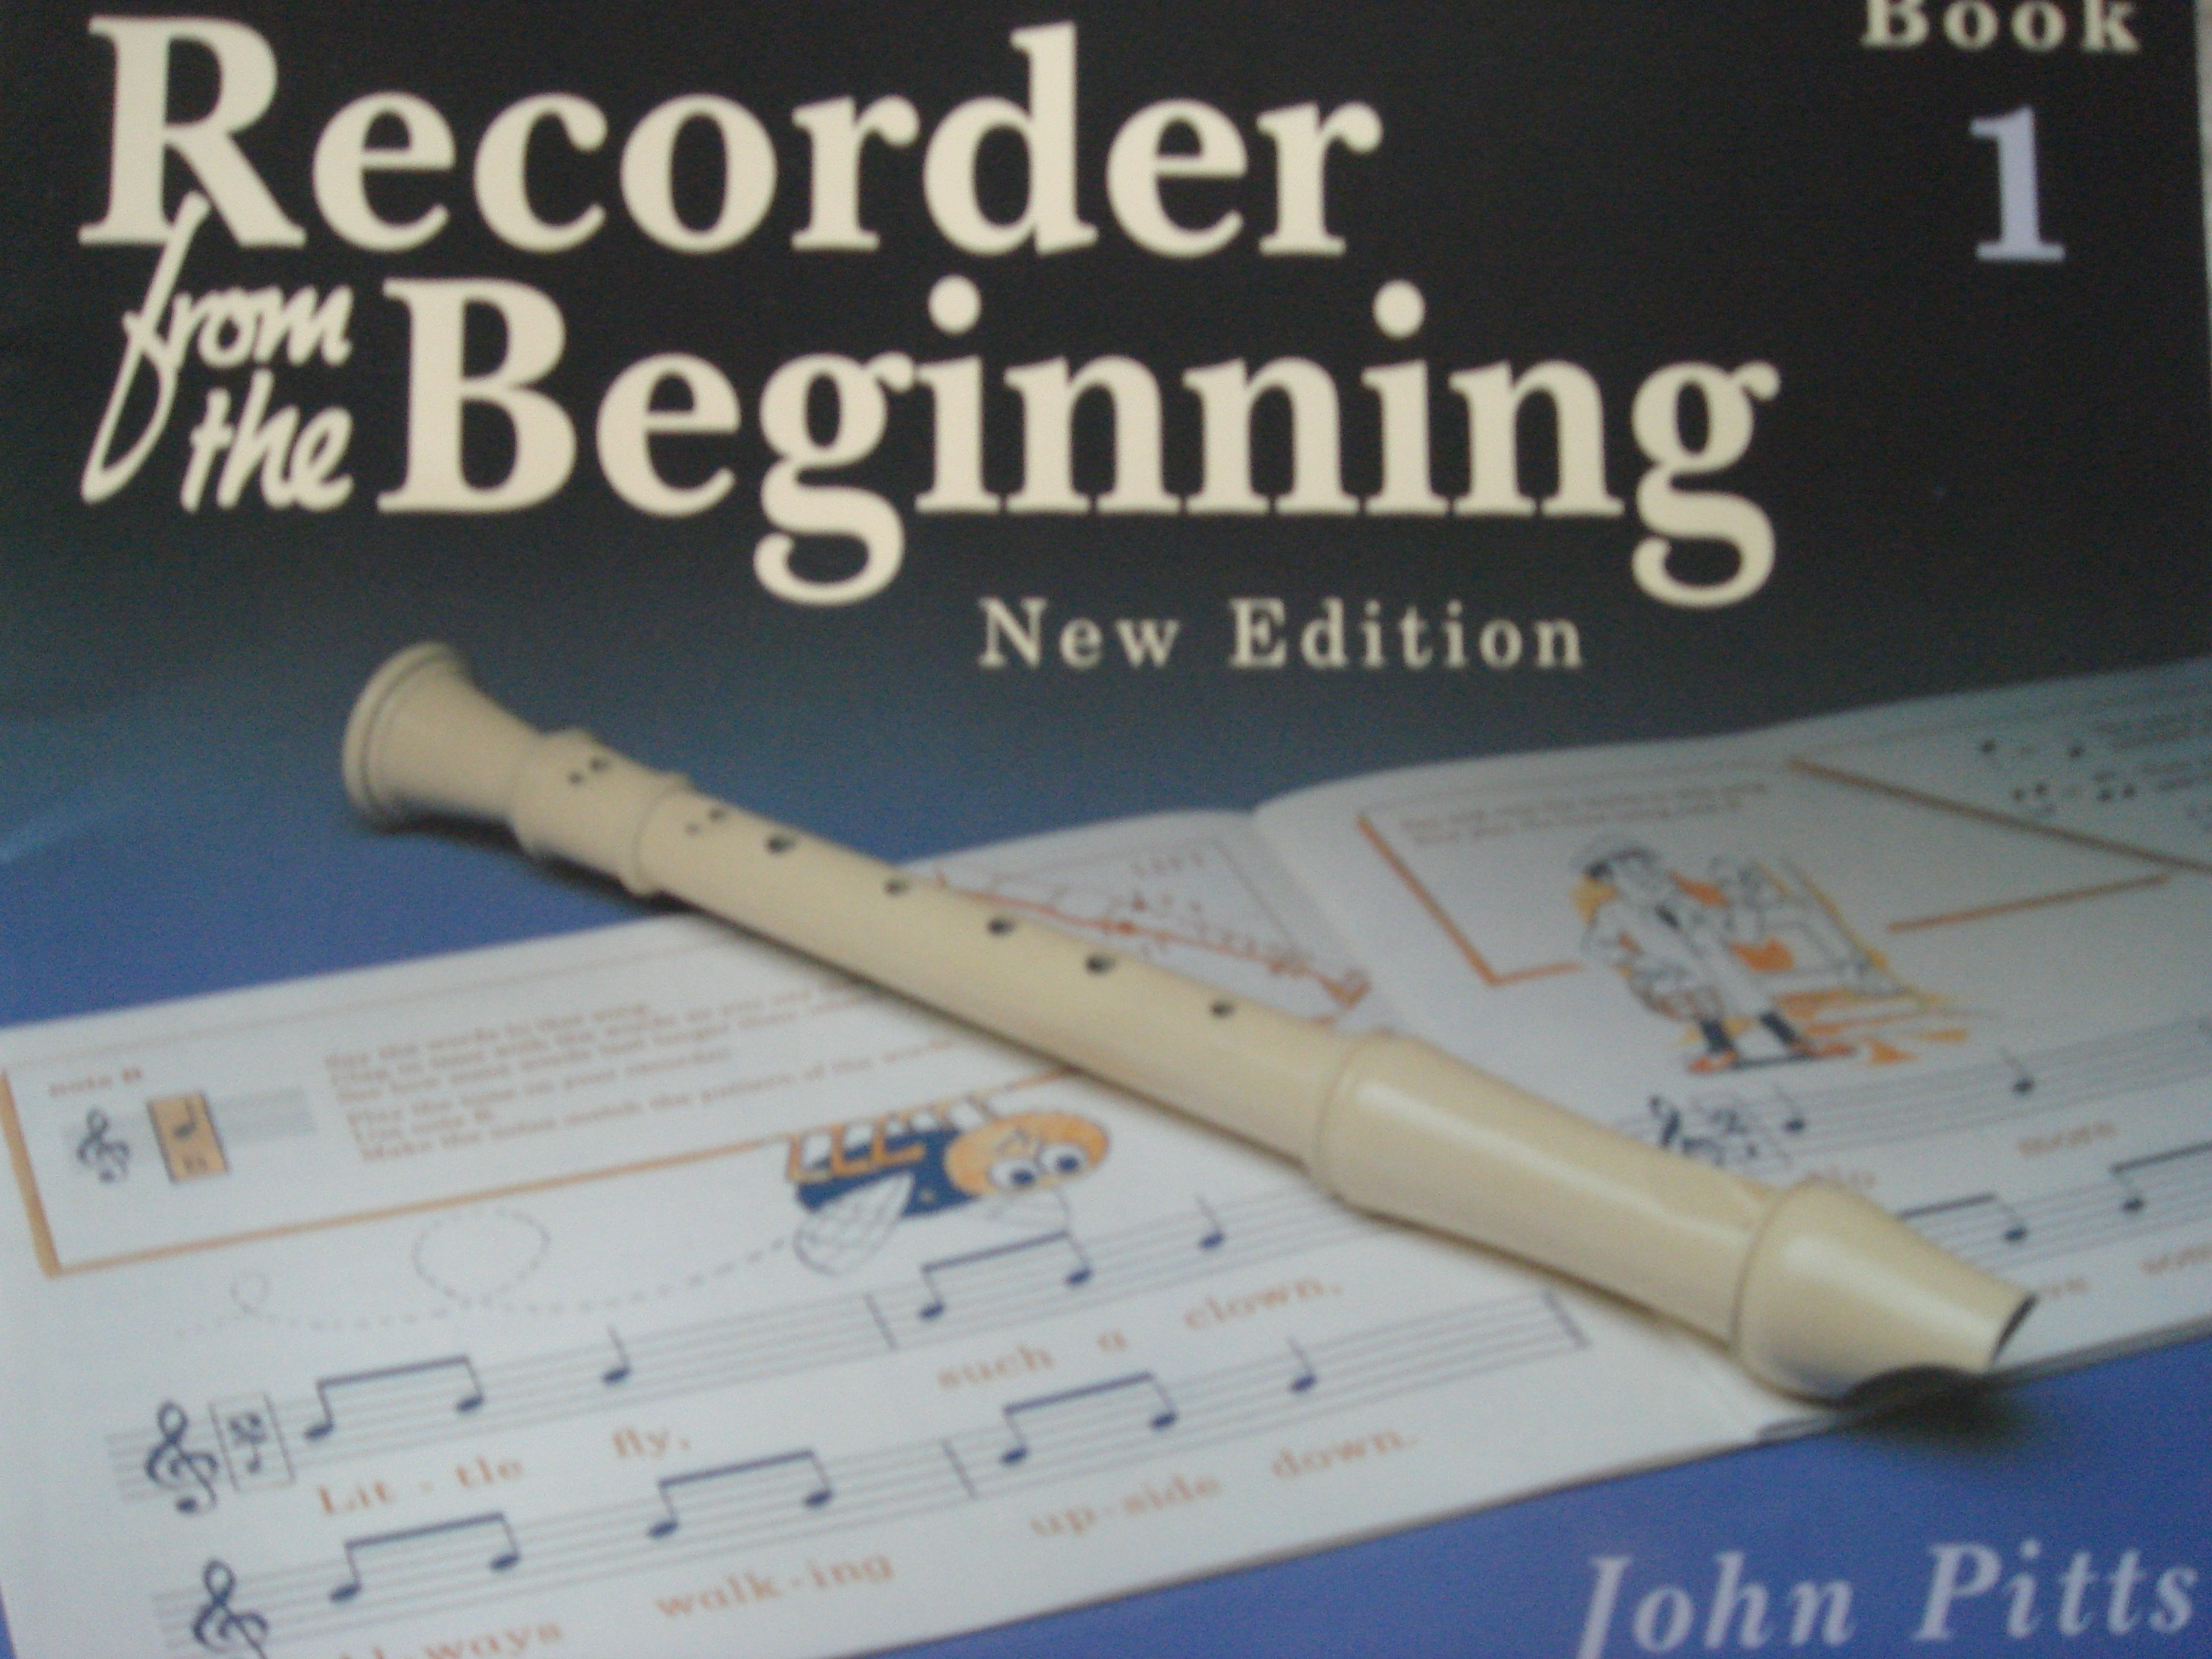 Recorder From The Beginning New Edition Book 1 Pupil's 7-11 Yrs John Pitts S155